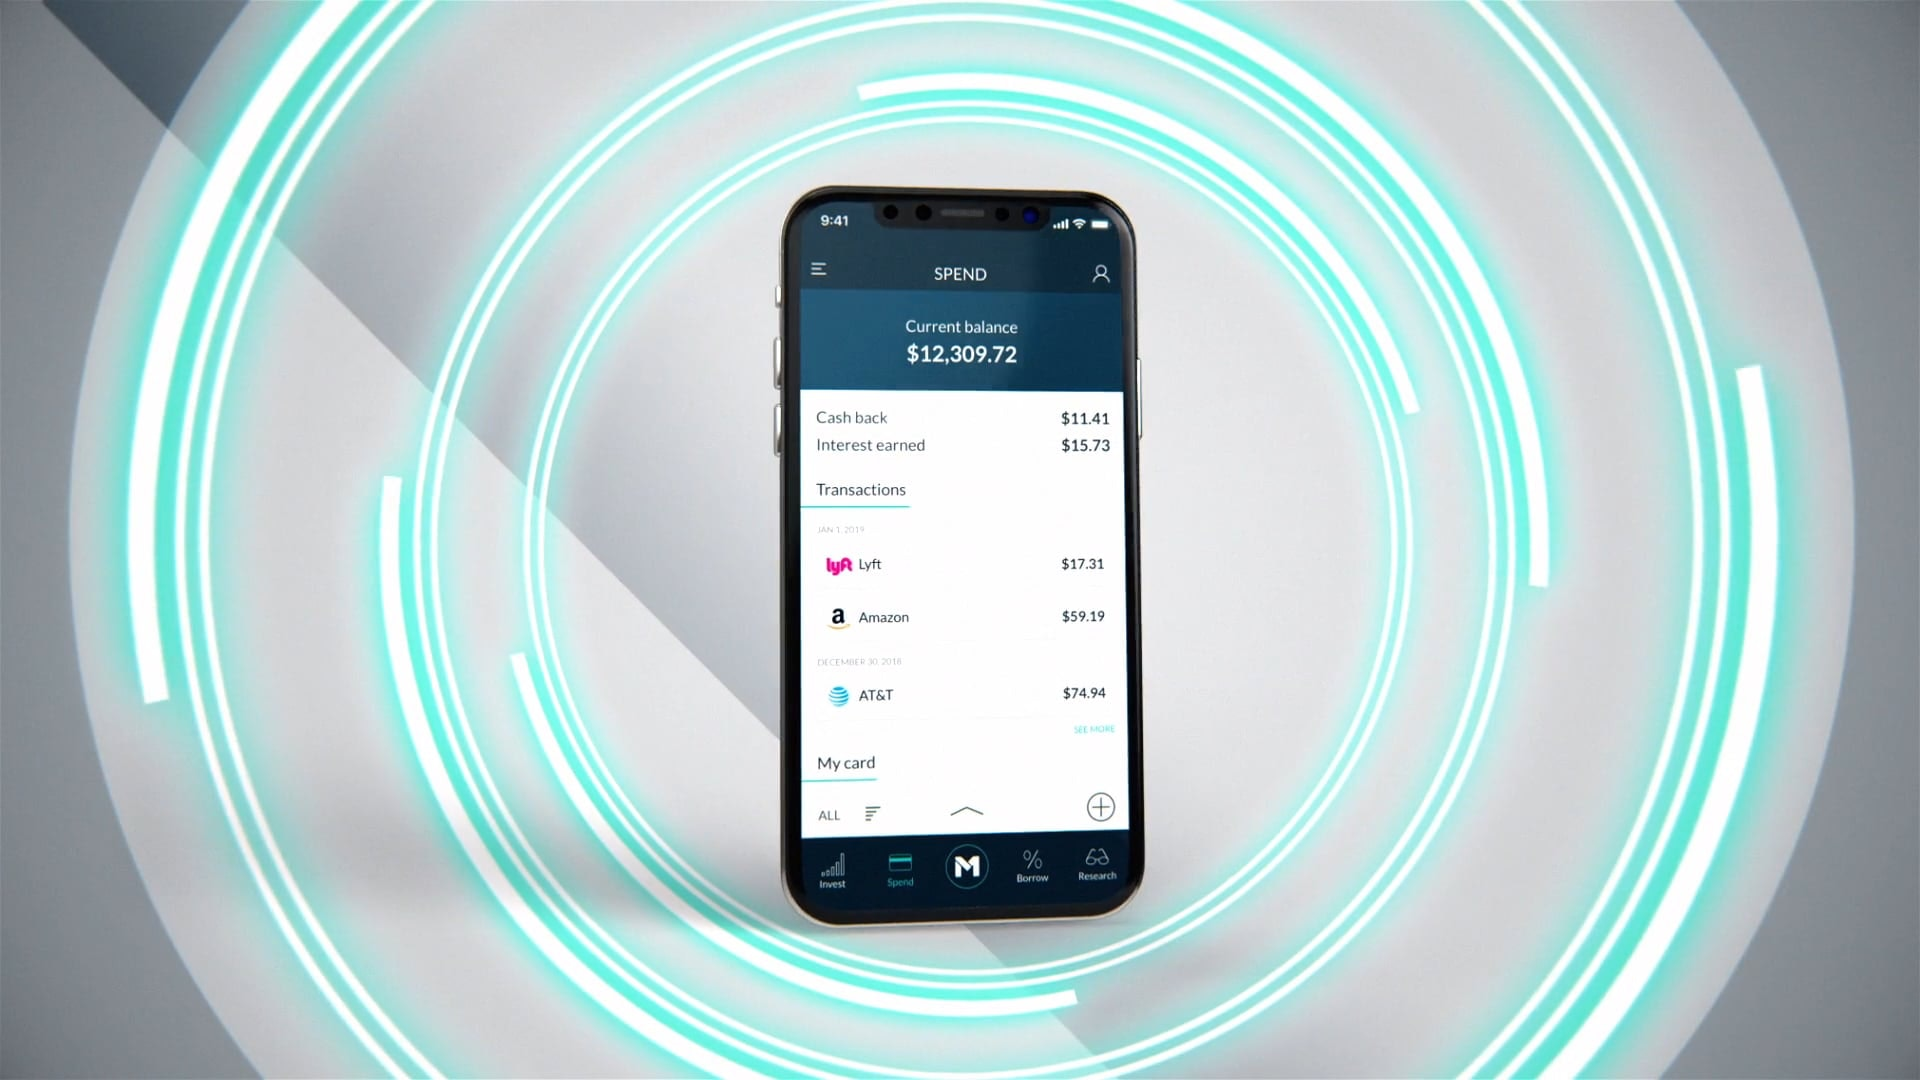 M1 Finance - Introducing Spend